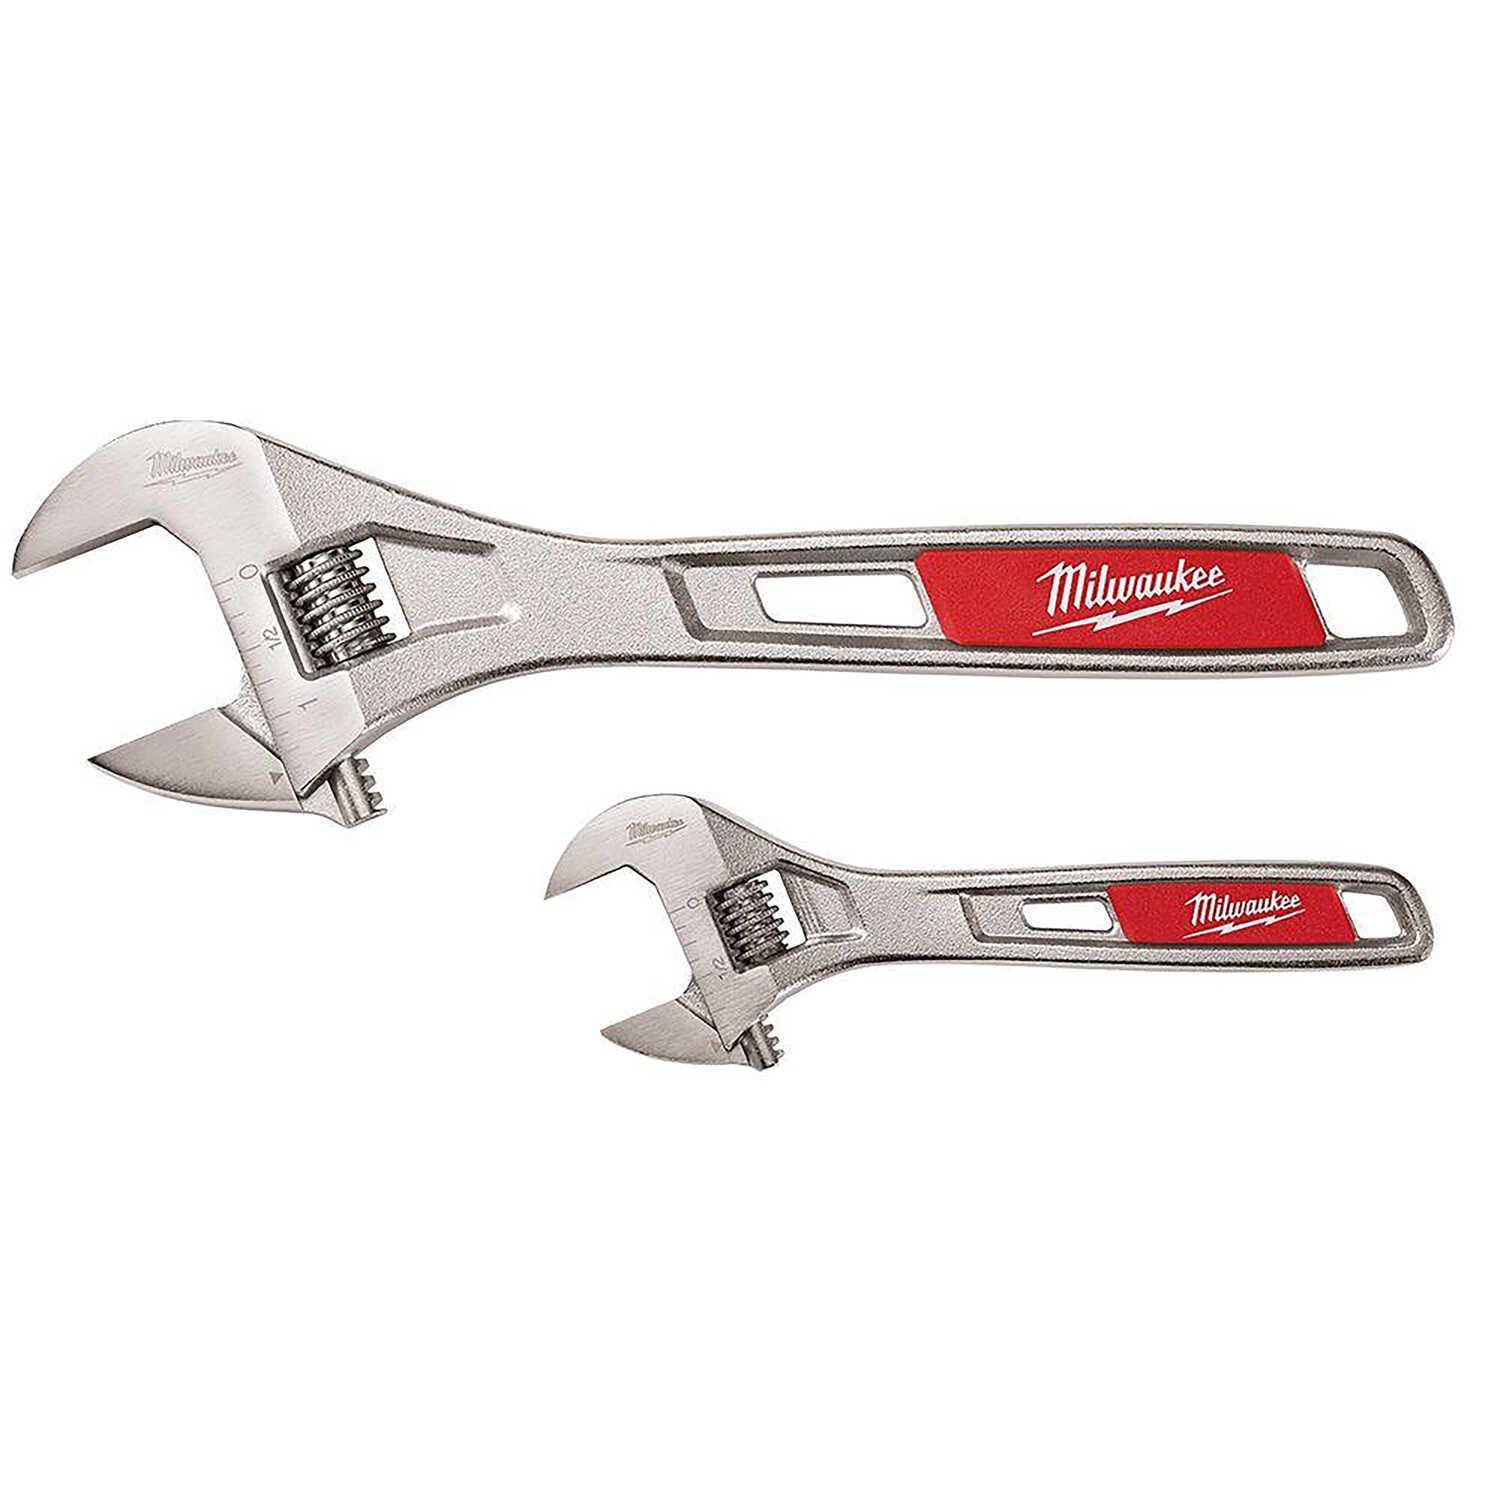 Milwaukee  13.5 in. L SAE  Adjustable Wrench Set  2 pc.